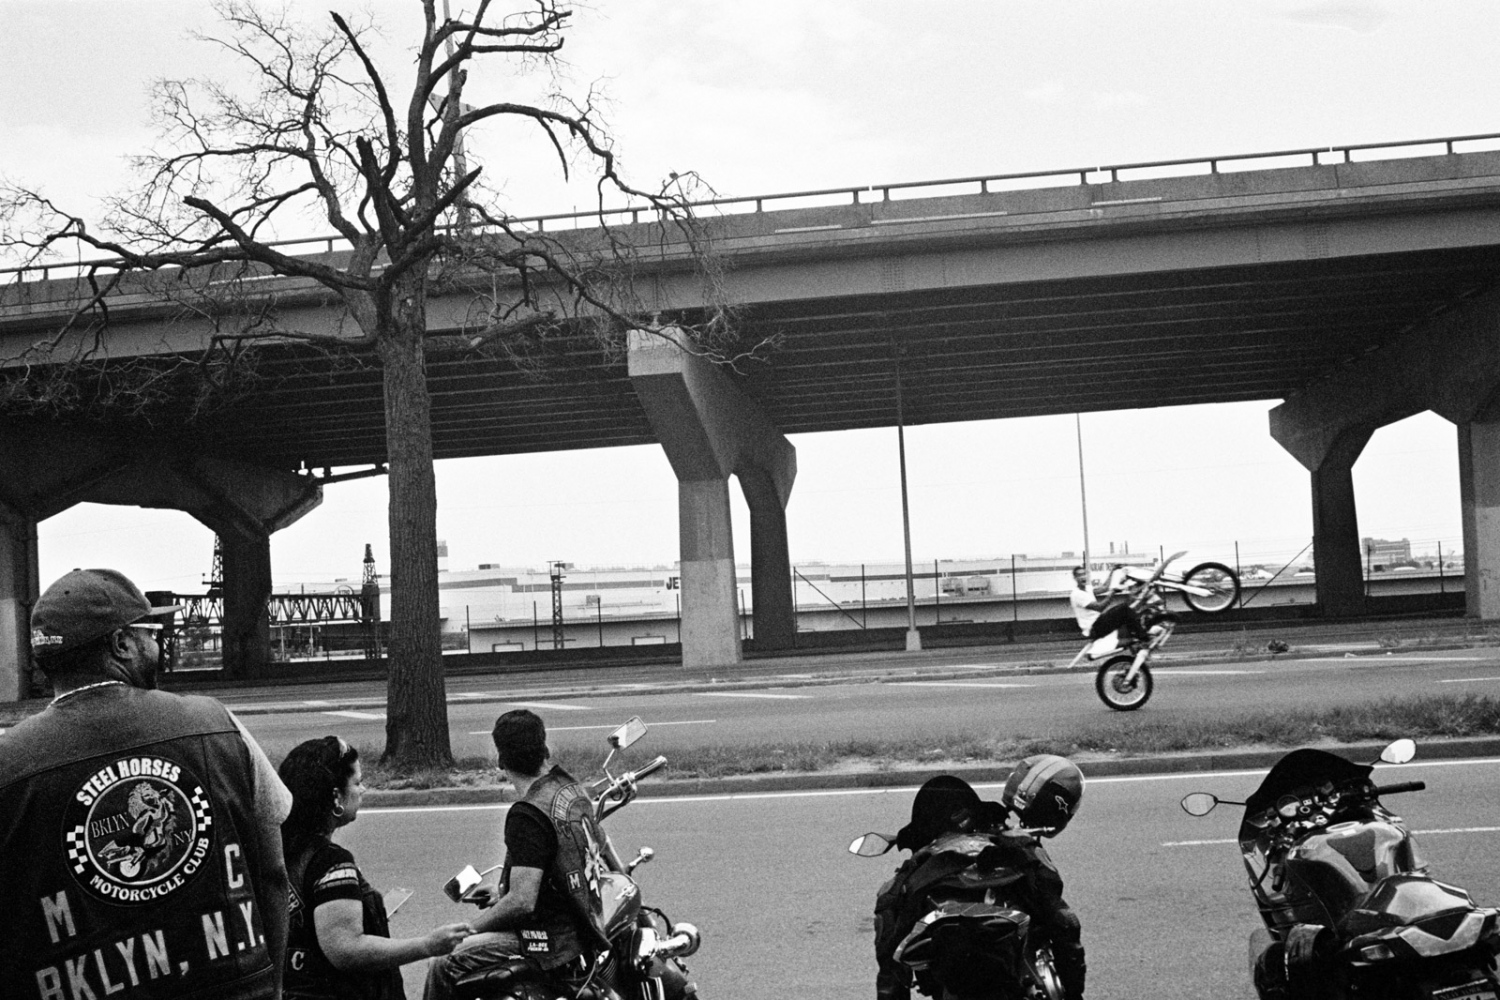 Wheelie on Bruckner Boulevard, The Bronx, 2015